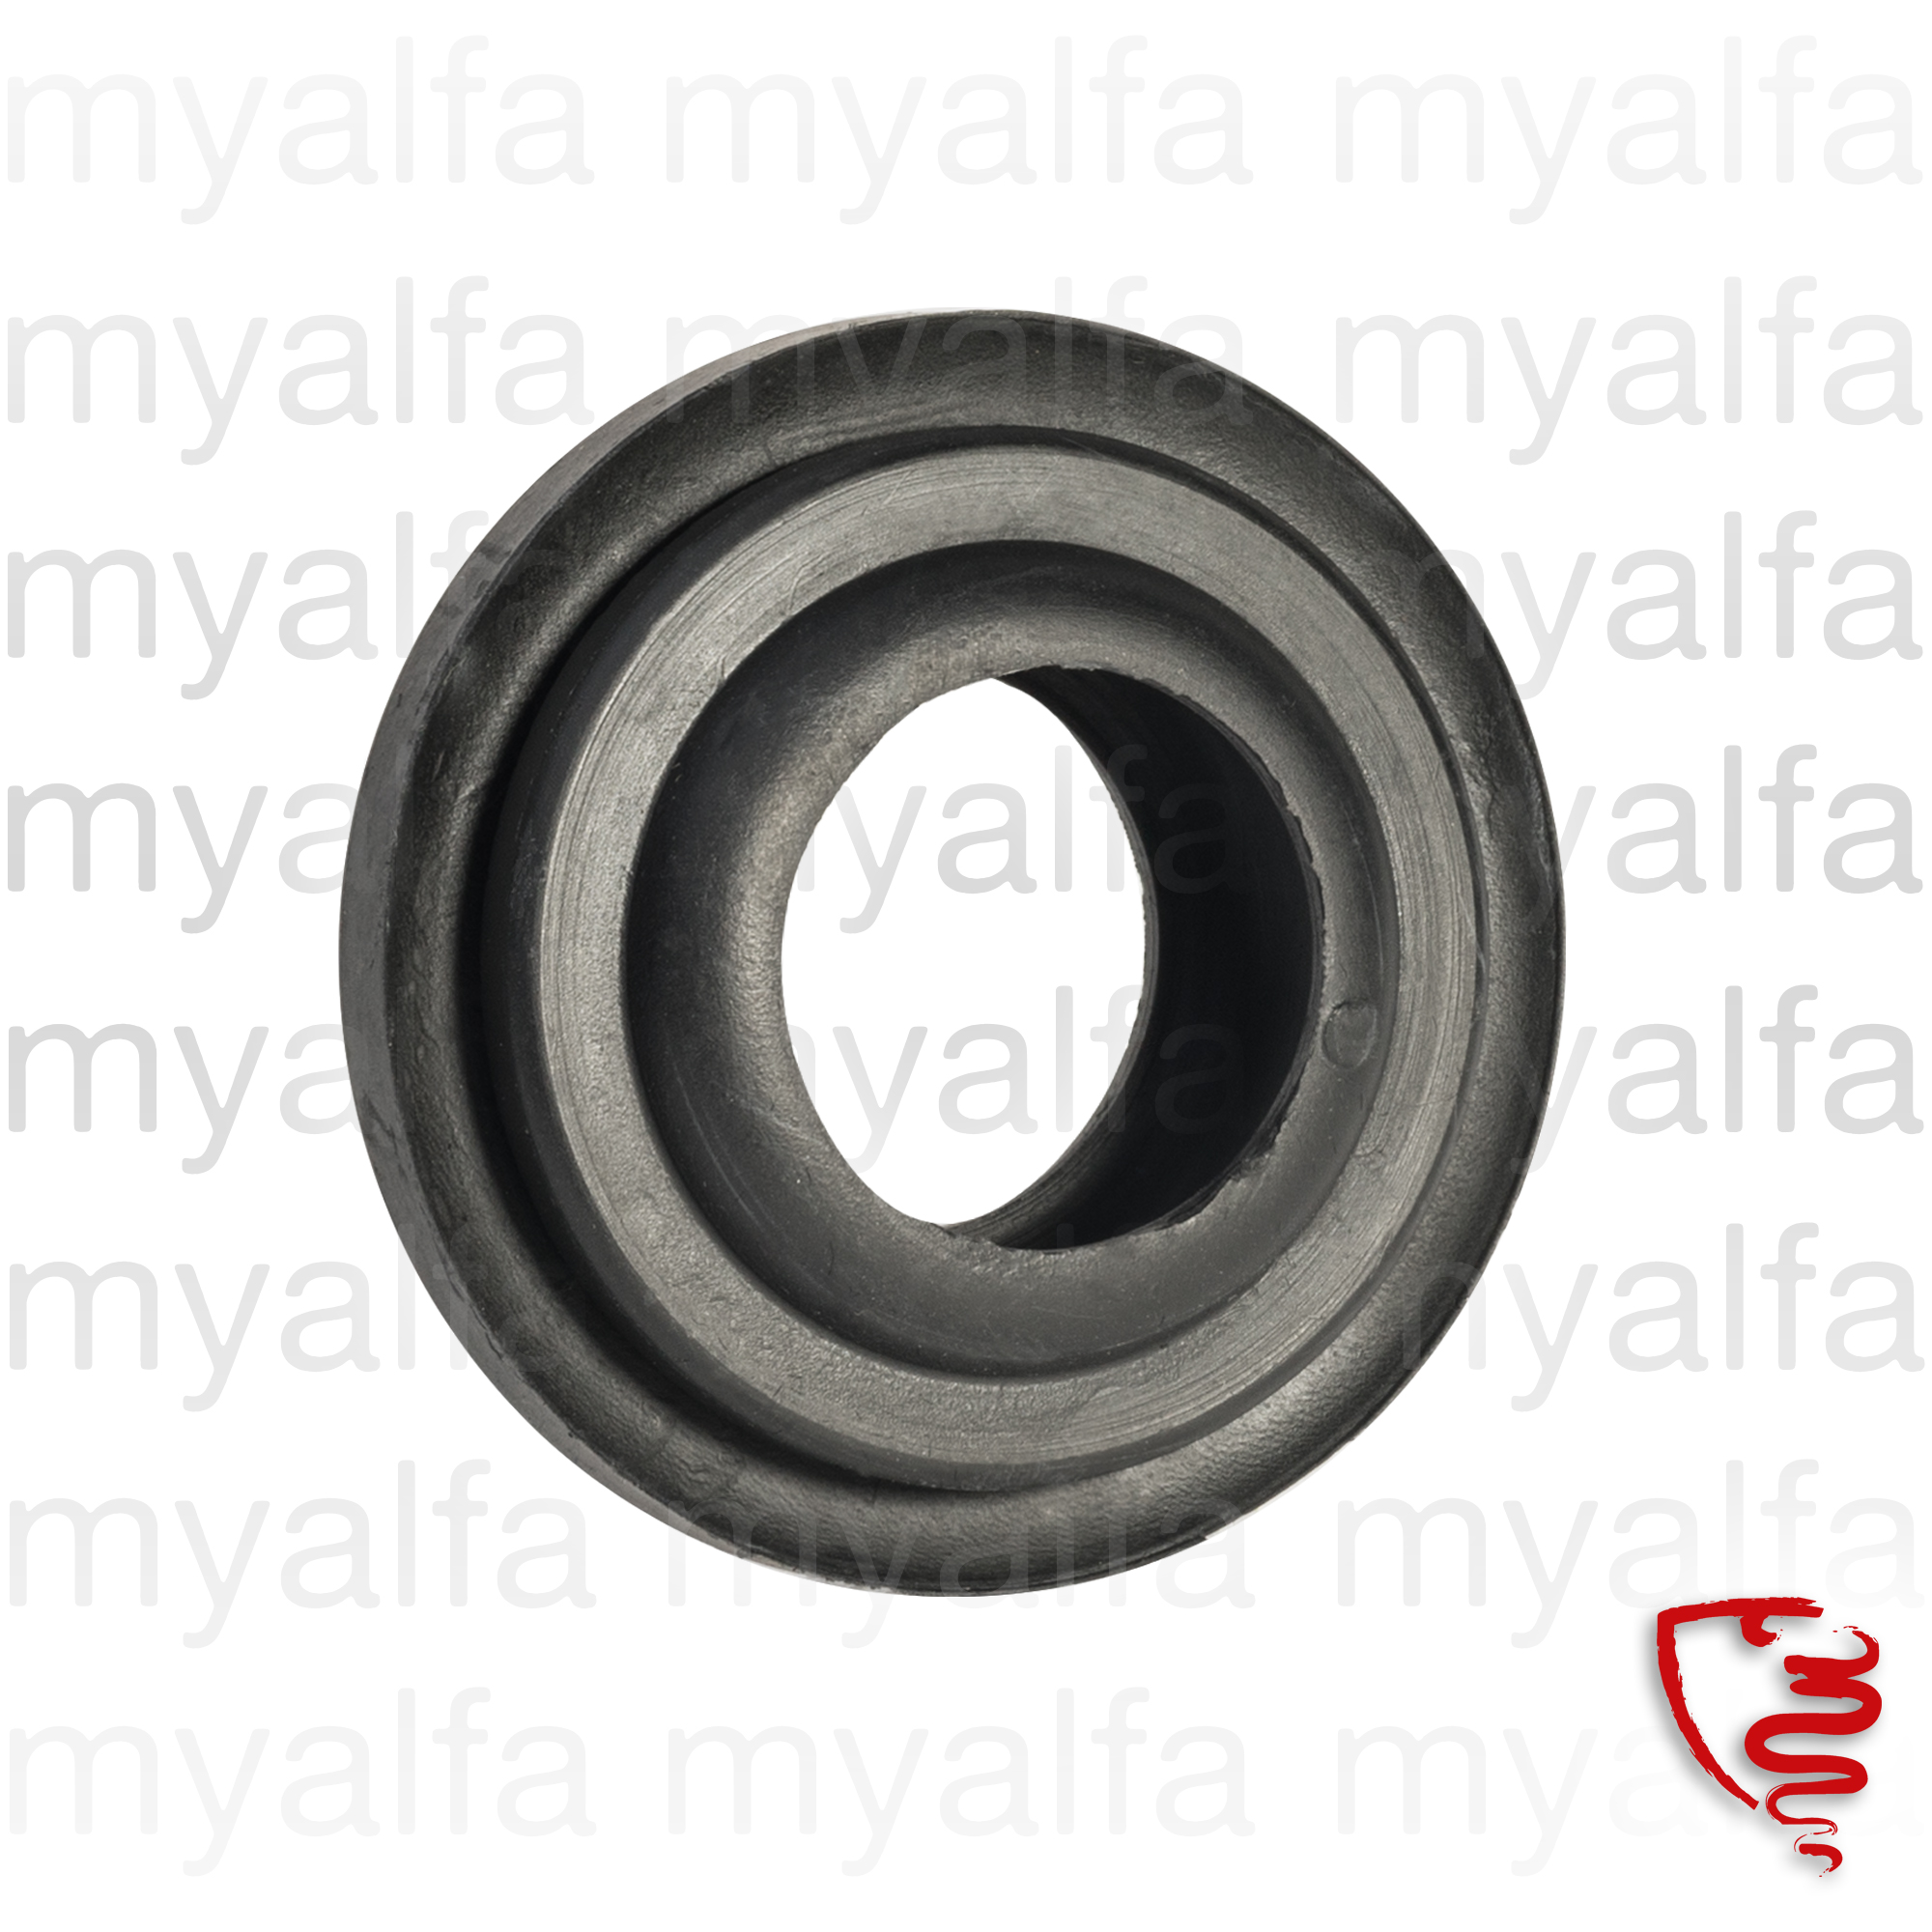 Dowel into the sewer pipe for 105/115, Body parts, Rubber parts, Body Seals/Grommets